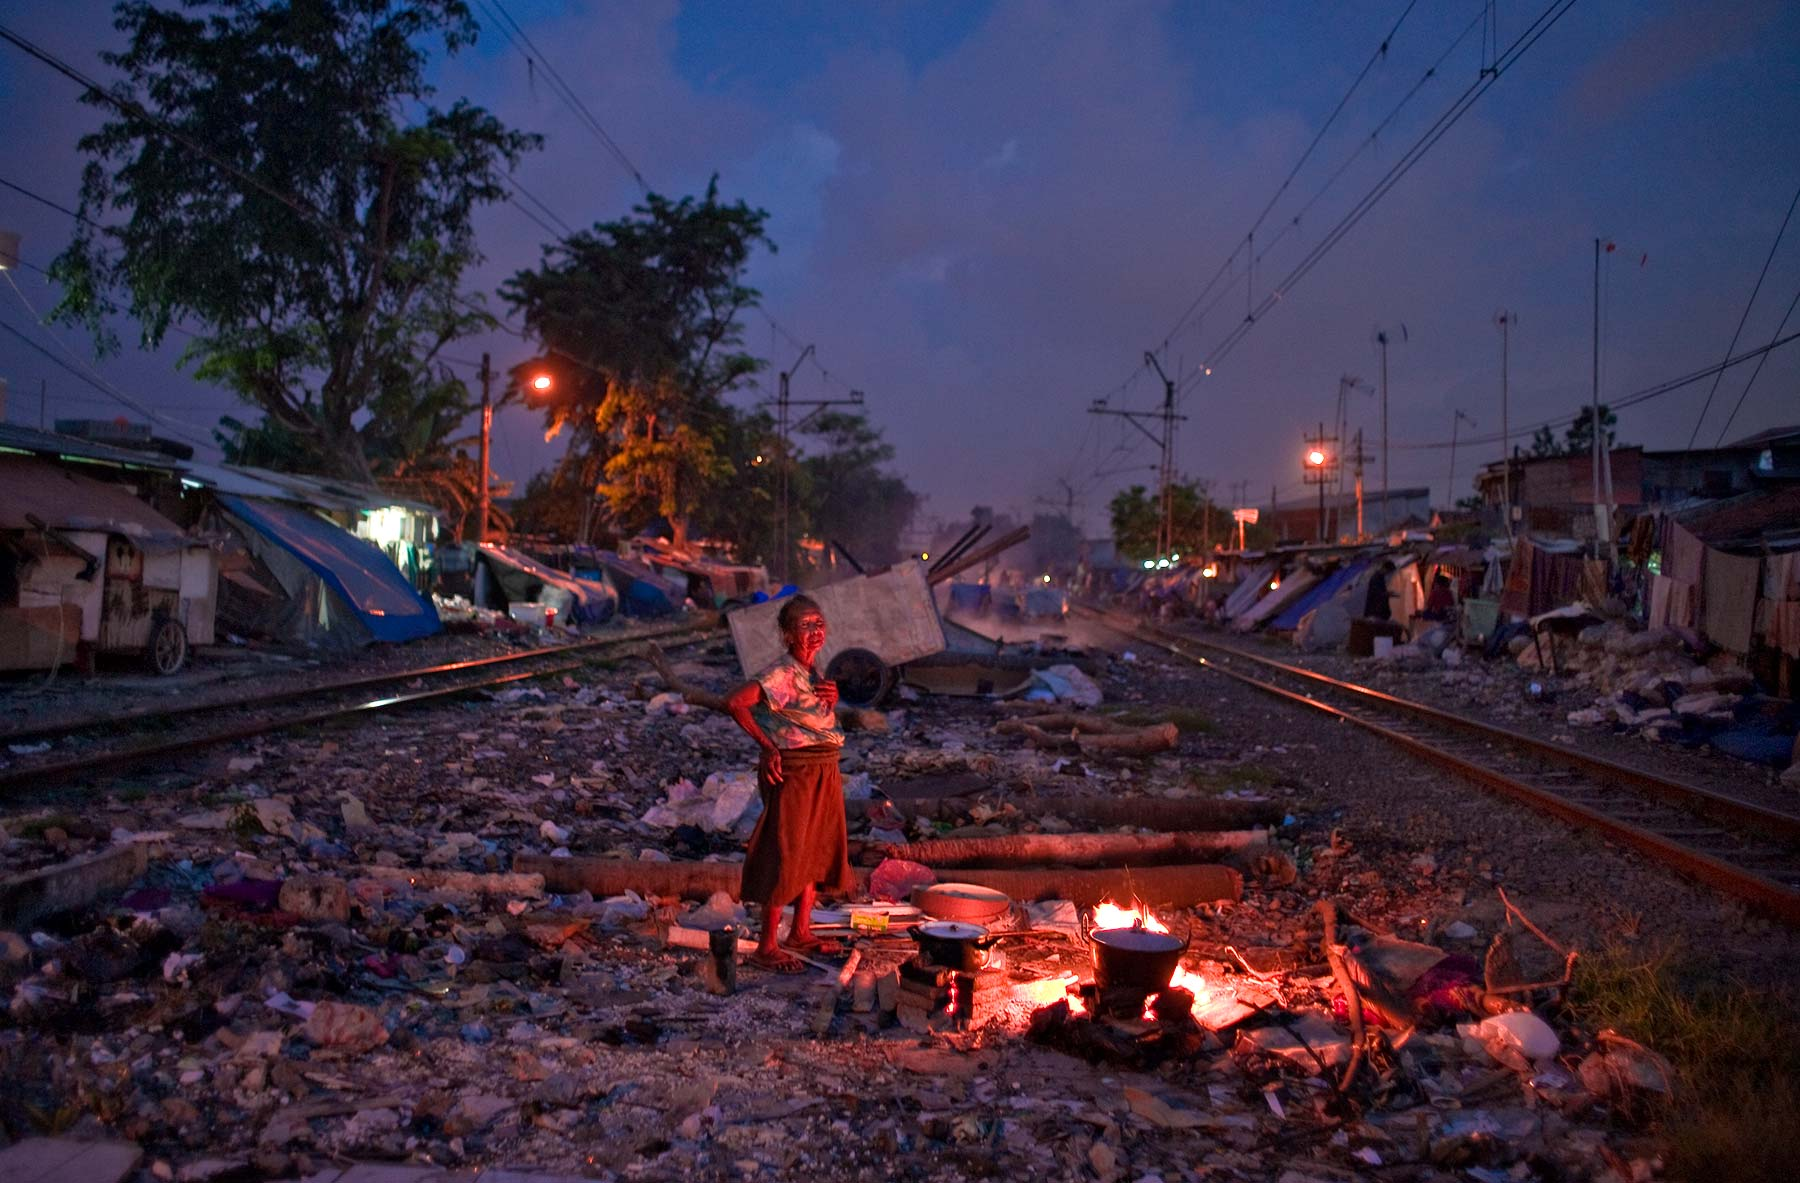 Indonesia woman cooks her dinner on railway track in East Jakarta